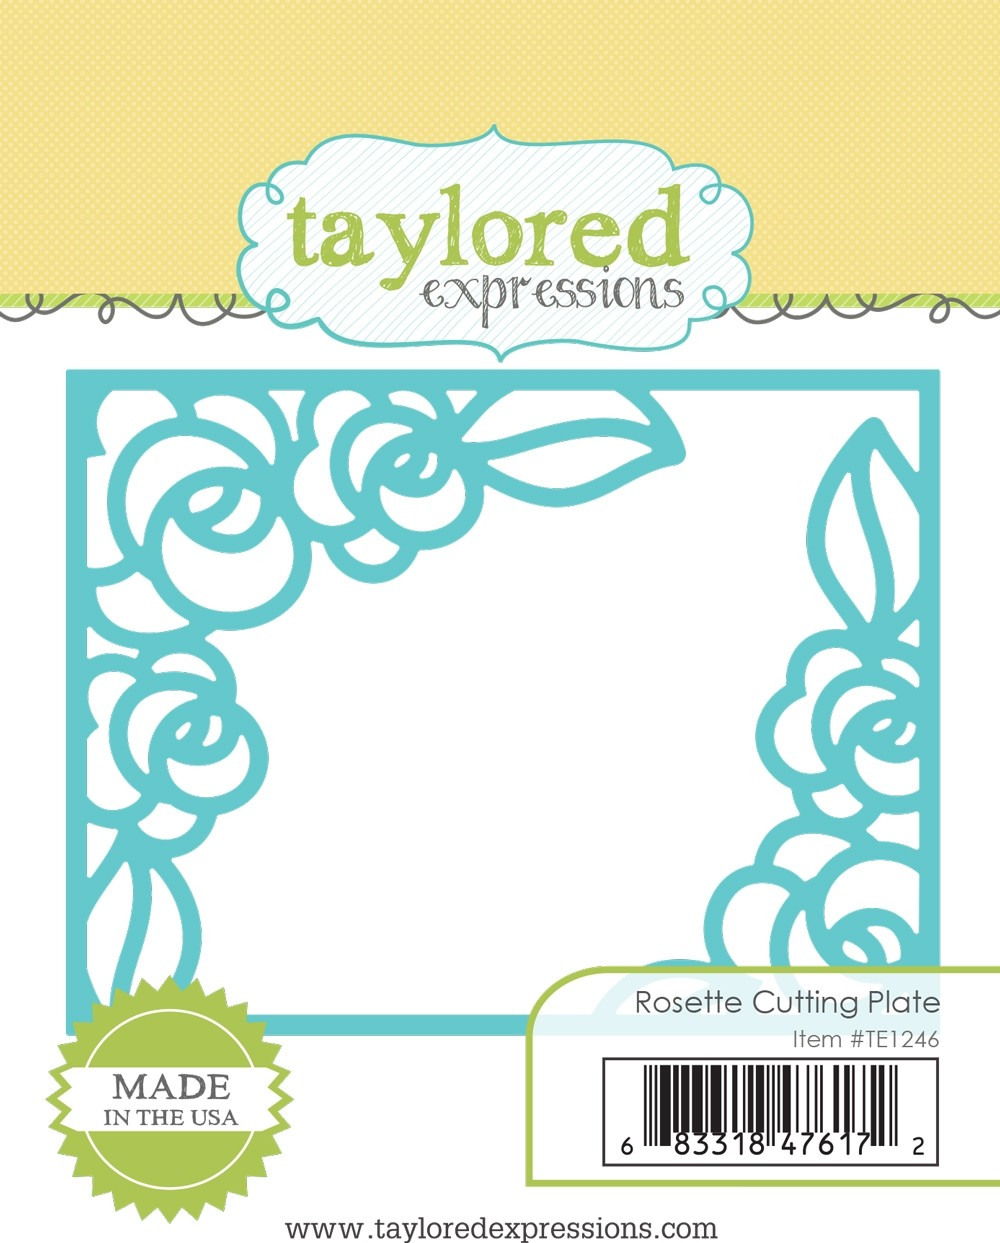 Taylored Expression - Rosette Cutting Plate